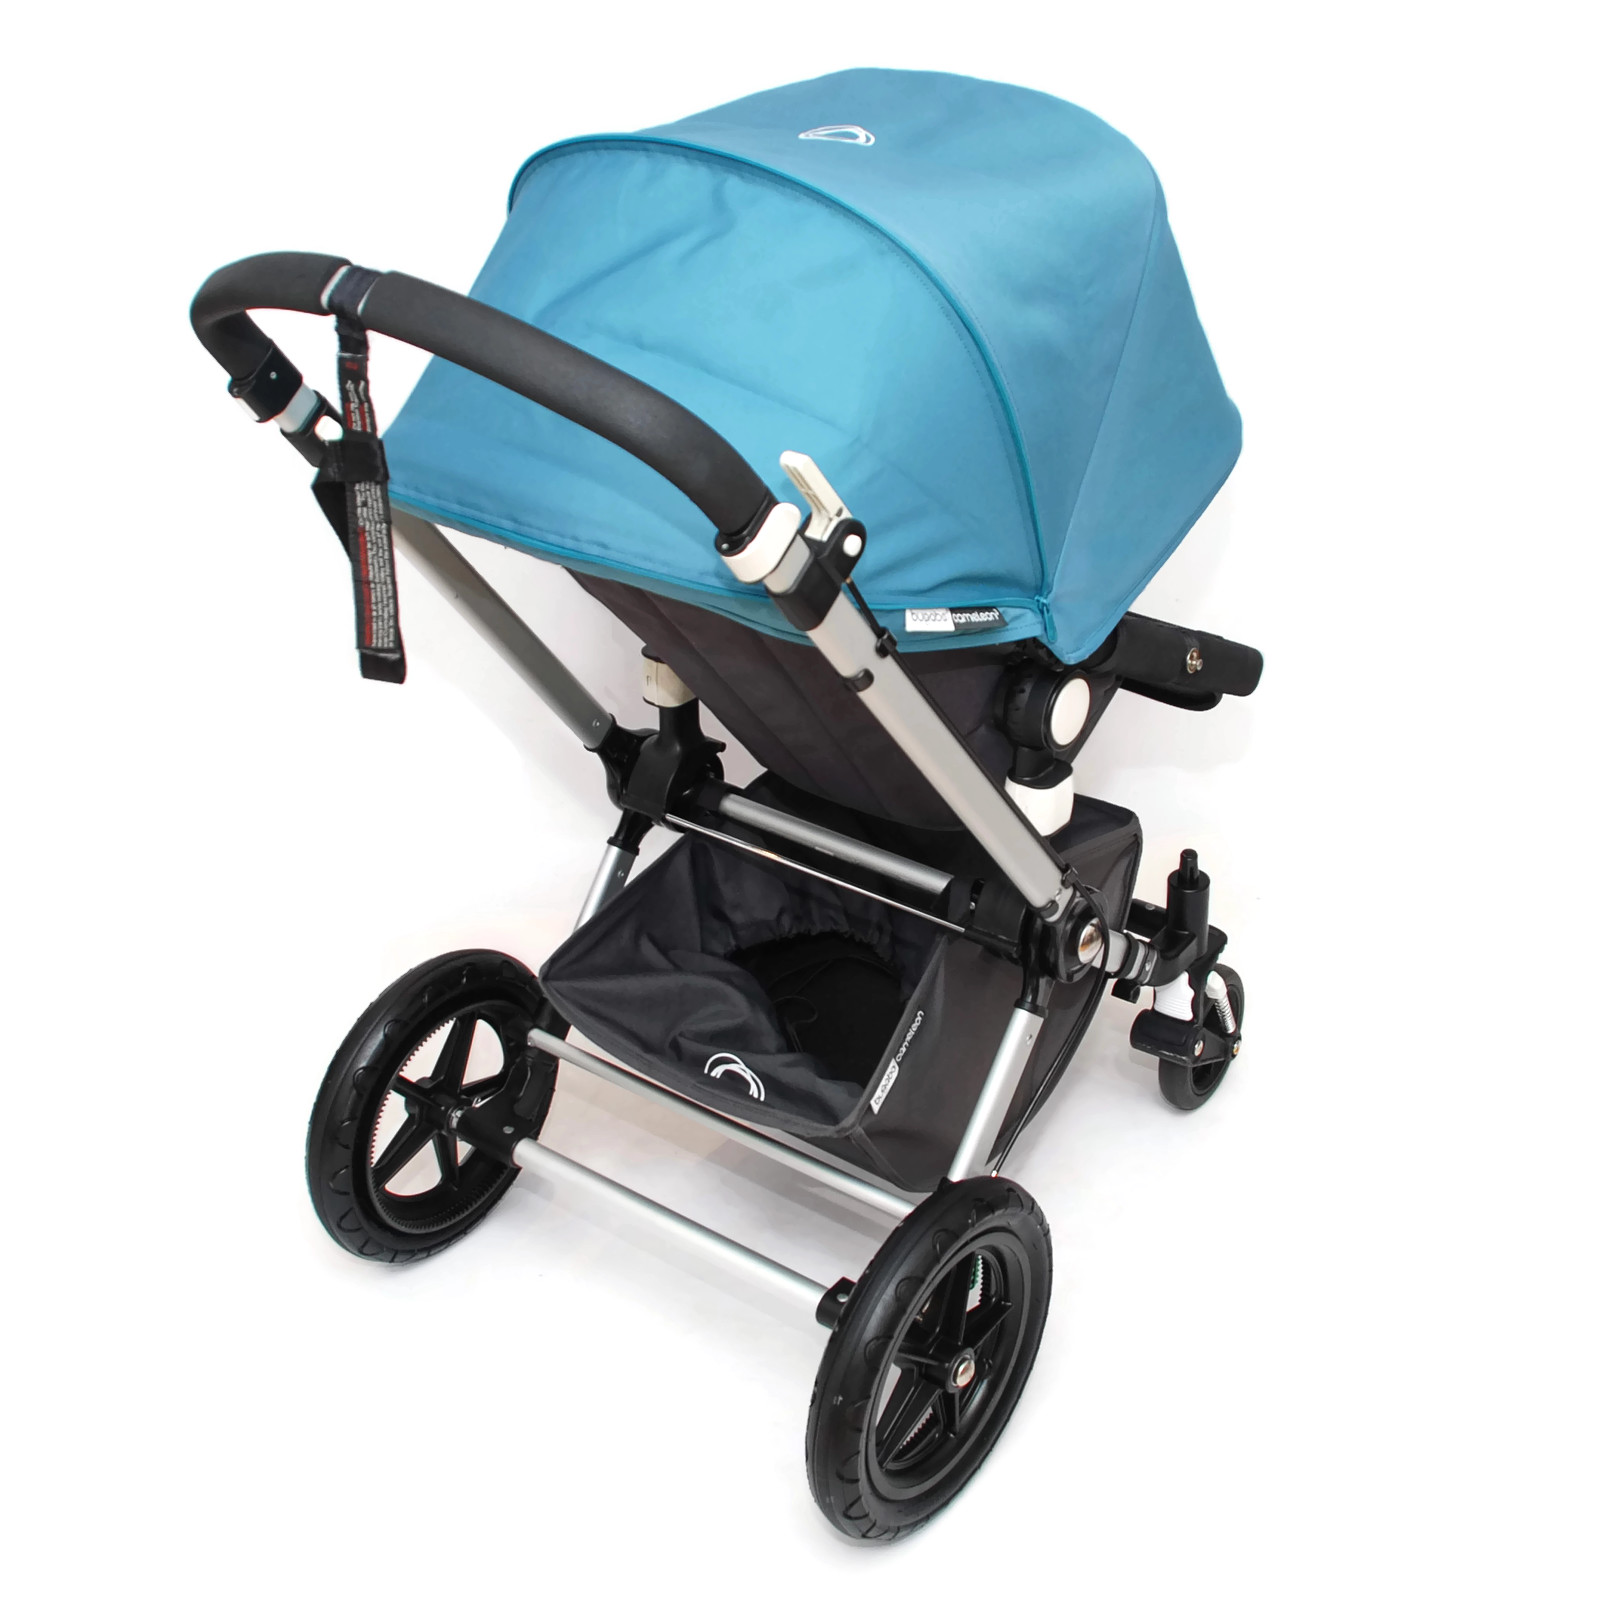 bugaboo cameleon 2 kinderwagen komplett mit cam3 petrol blue blau set. Black Bedroom Furniture Sets. Home Design Ideas